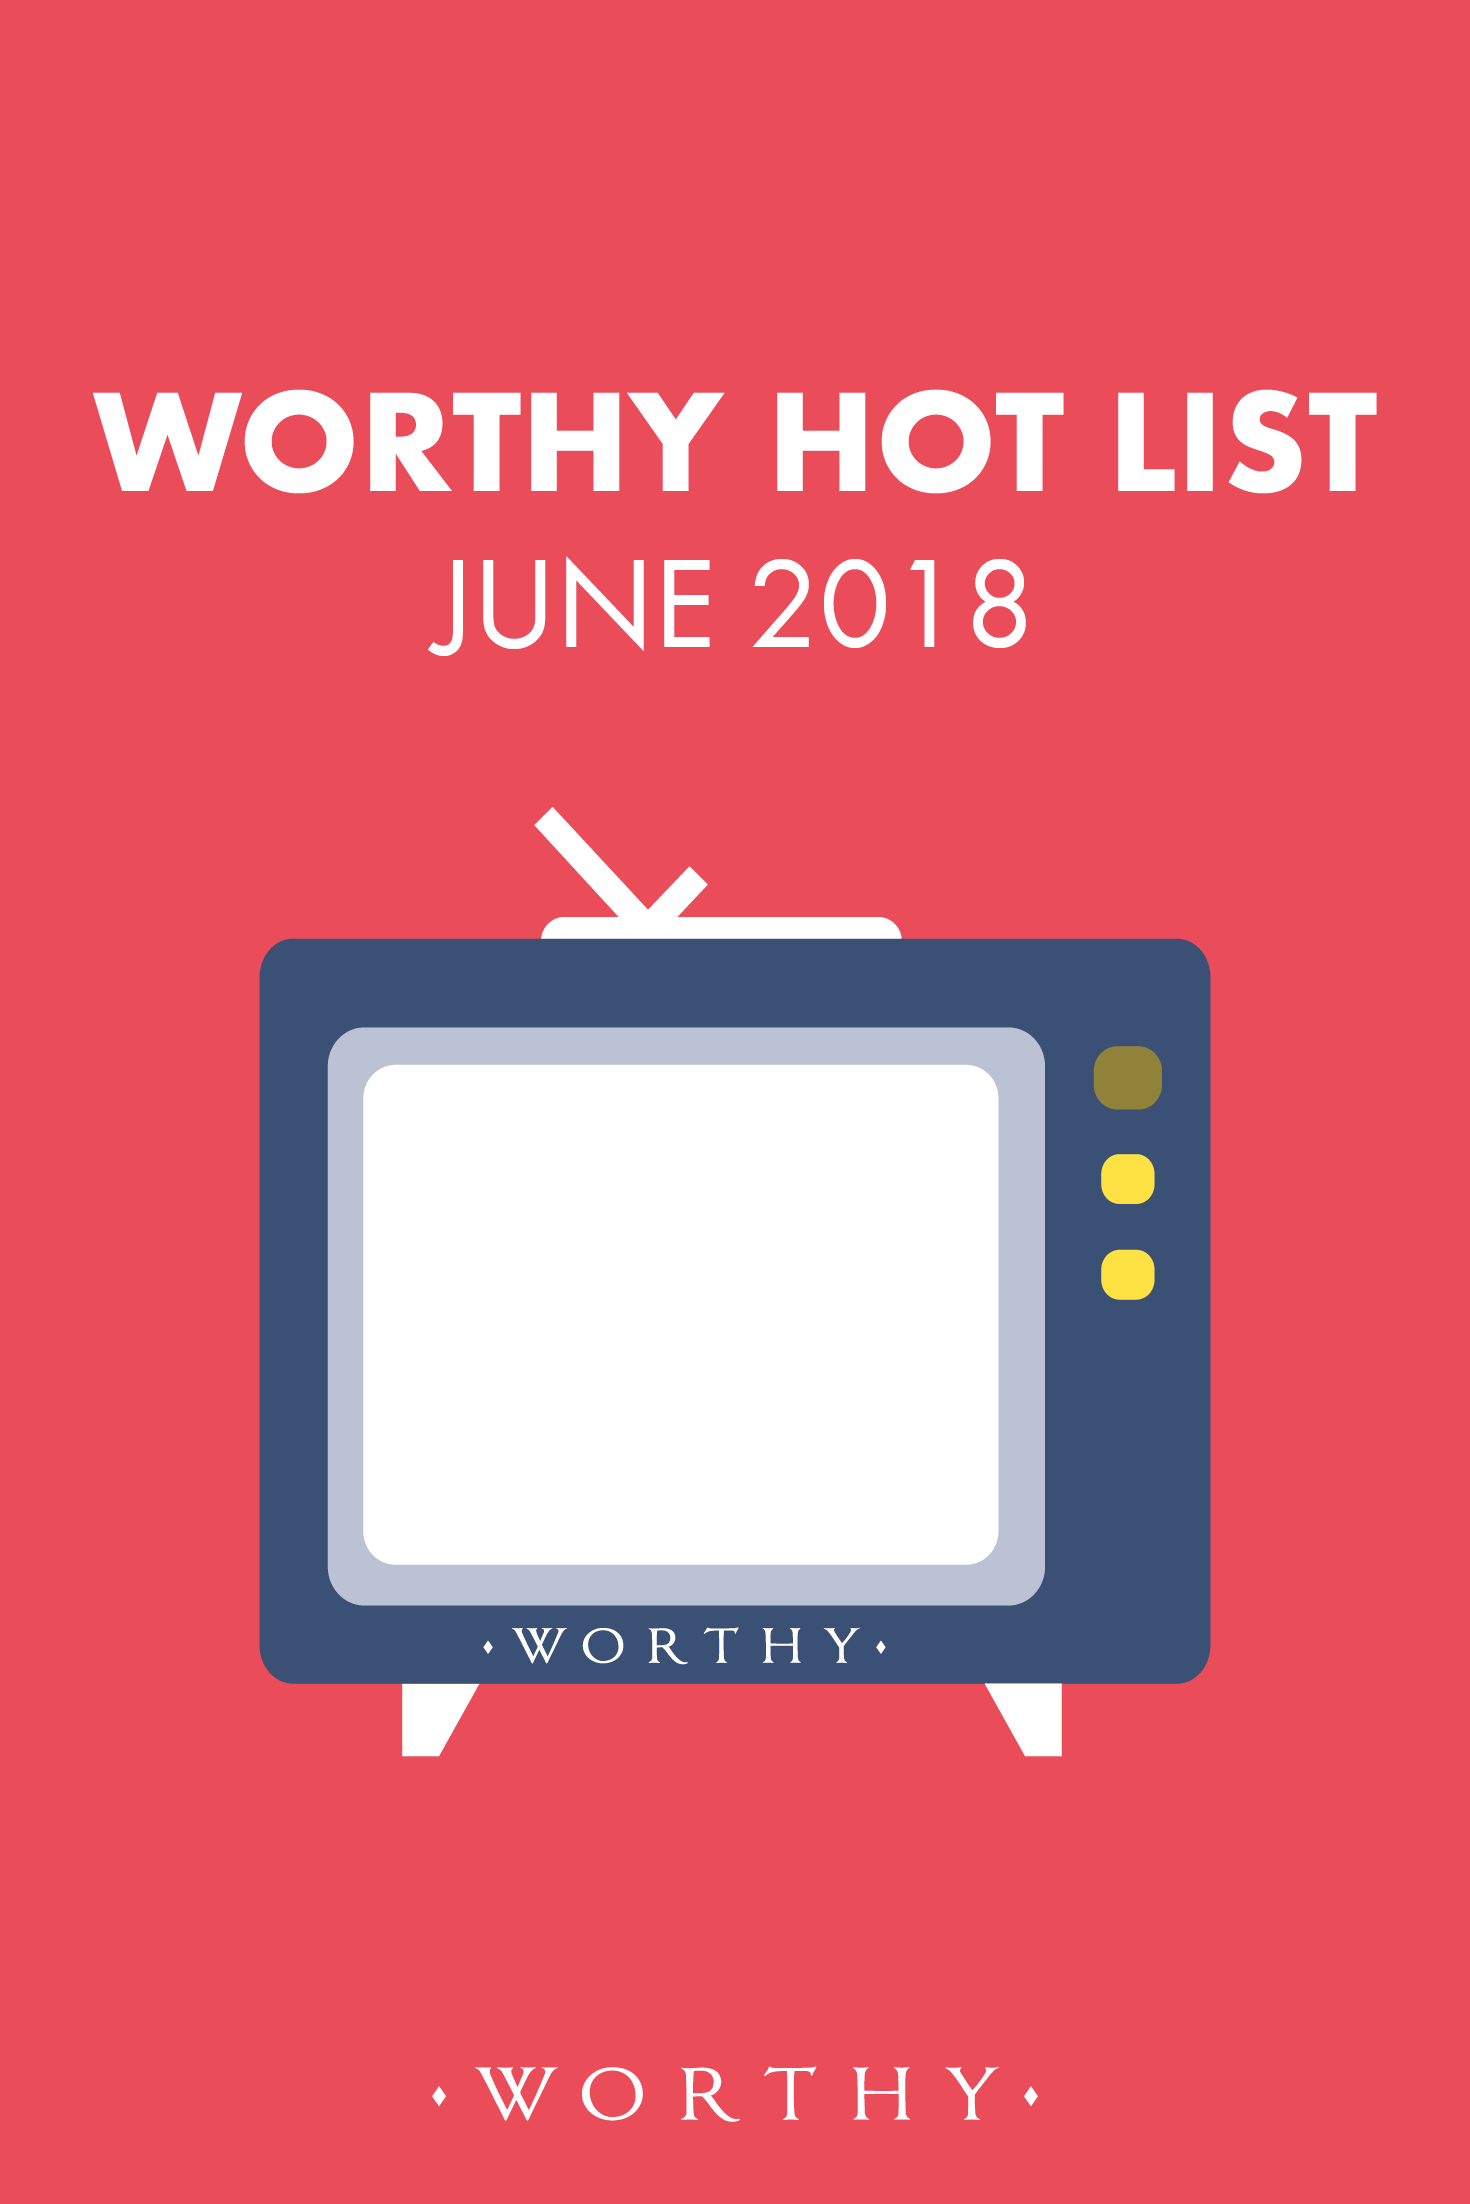 Want to know what we at Worthy are buzzing about in June? Check out what movies, shows and specials made it onto our hot list this month.